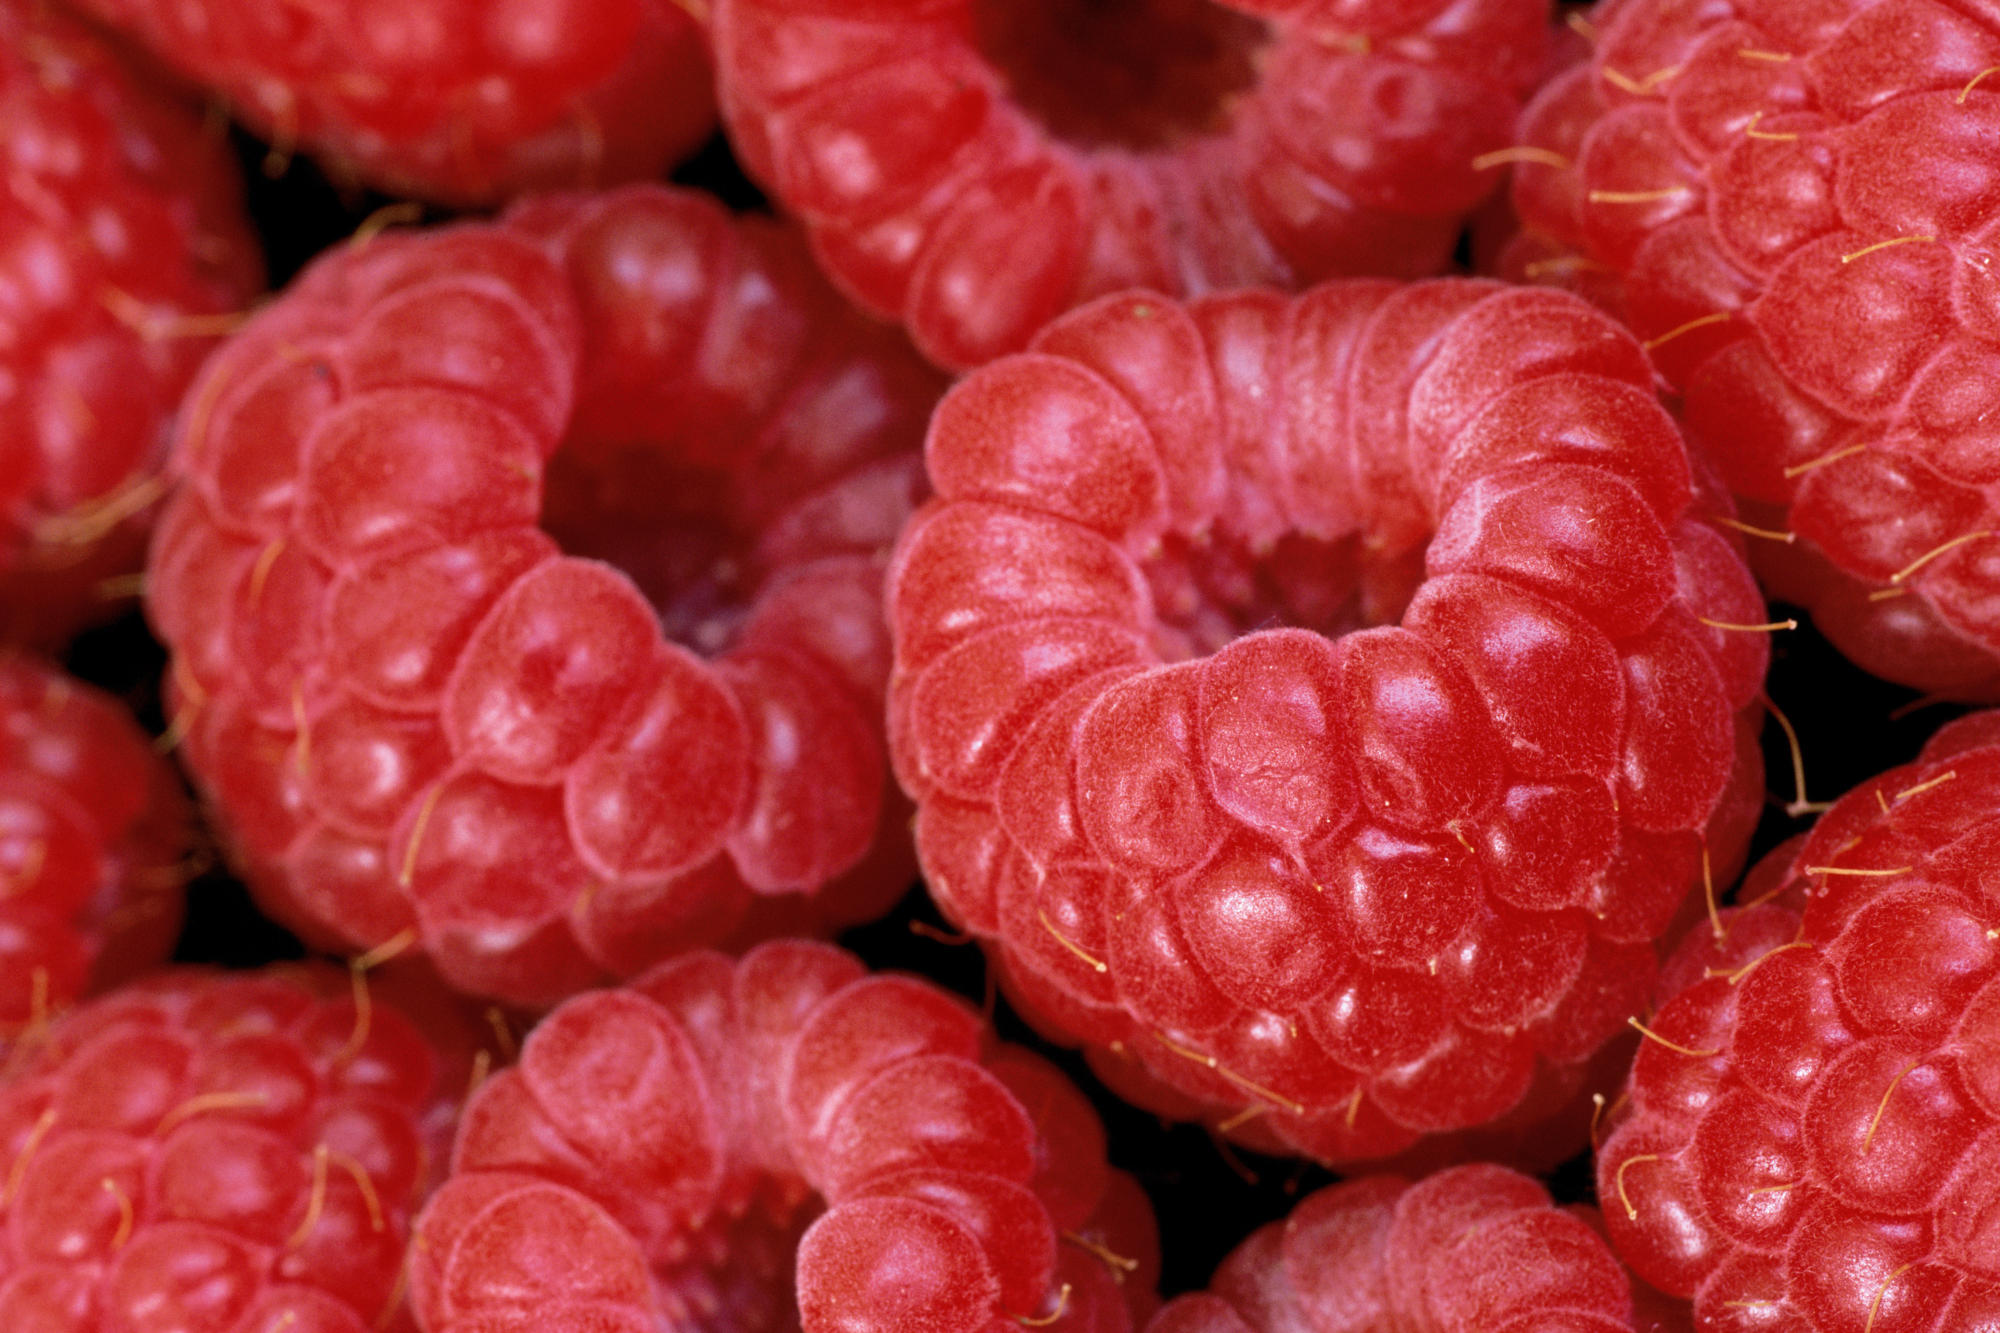 Raspberry - Top 10 Fat-Burning Foods